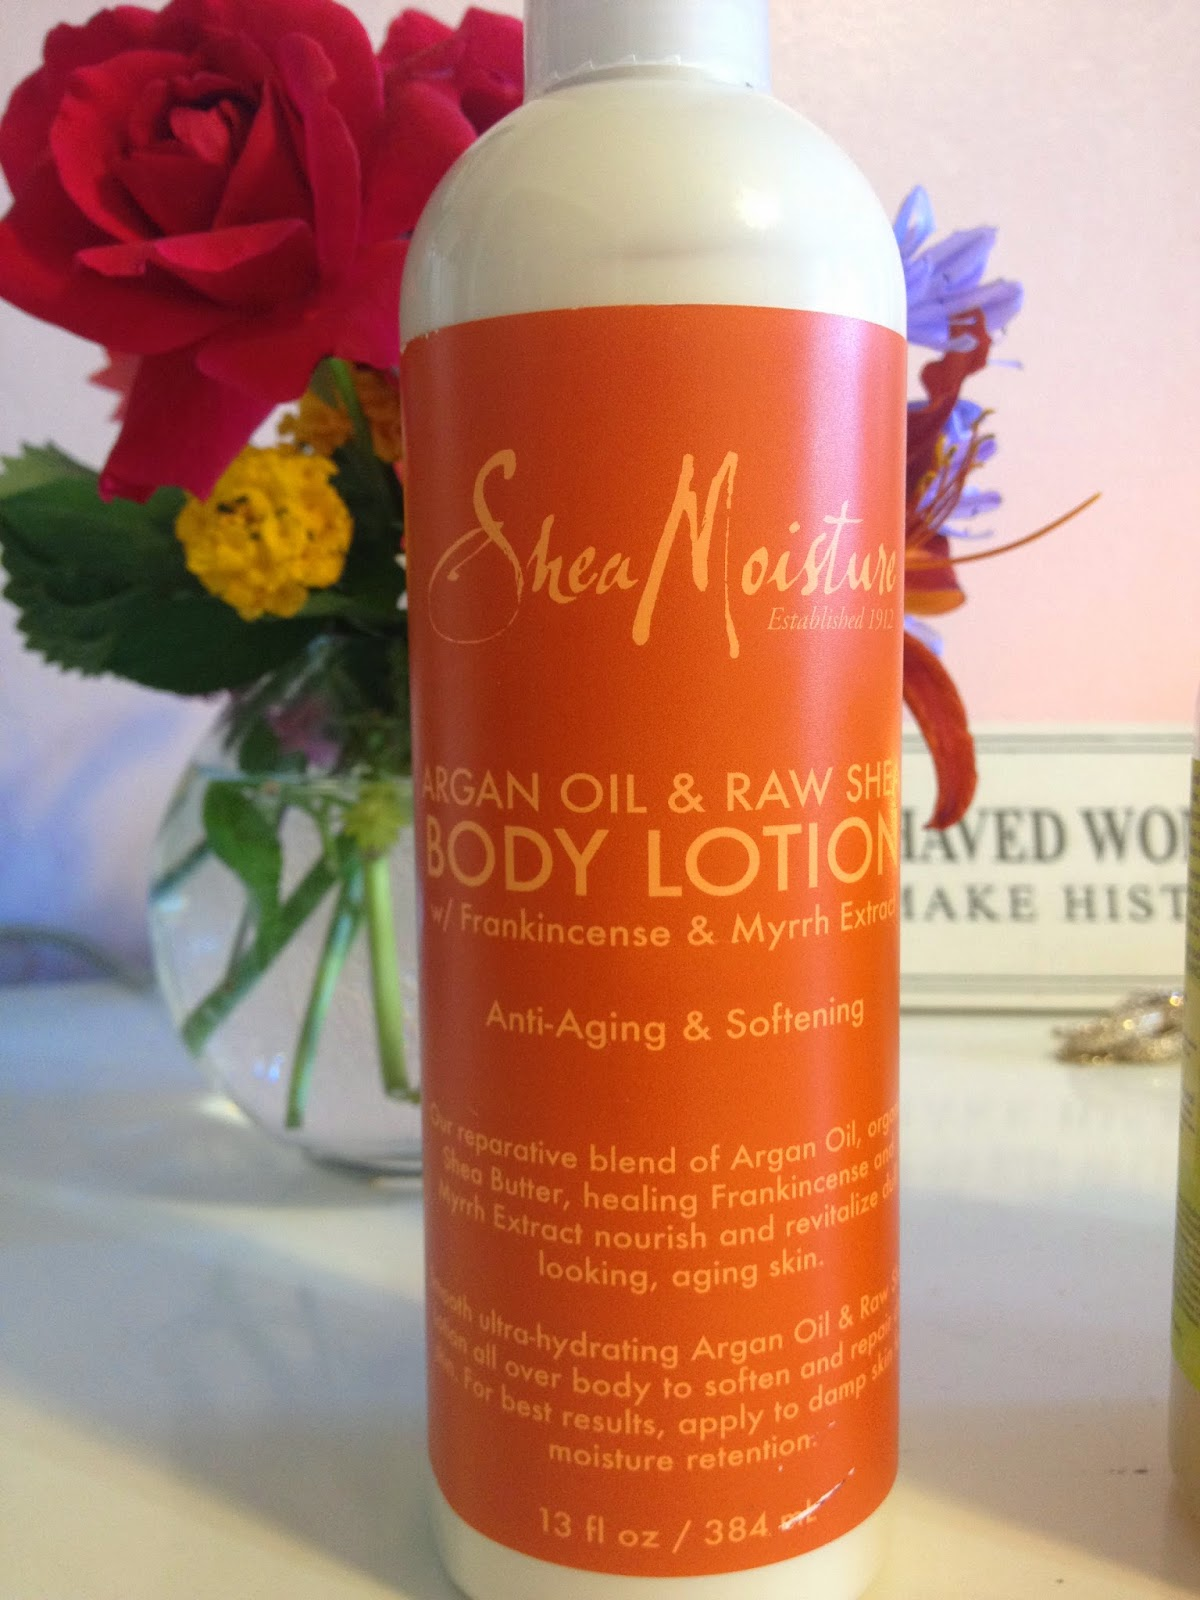 Argan Oil & Raw Shea Body Lotion Frankincense & Myrrh Extract ($8.99)